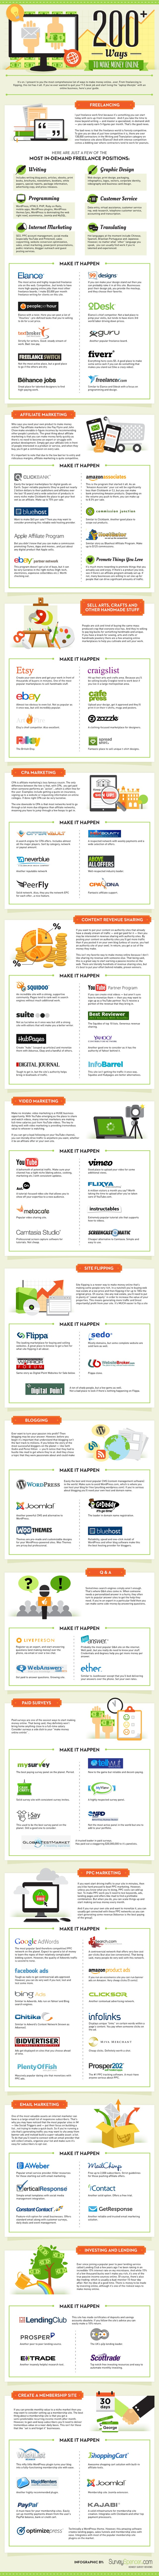 200 Different Ways You Can Make Money Online (infographic)